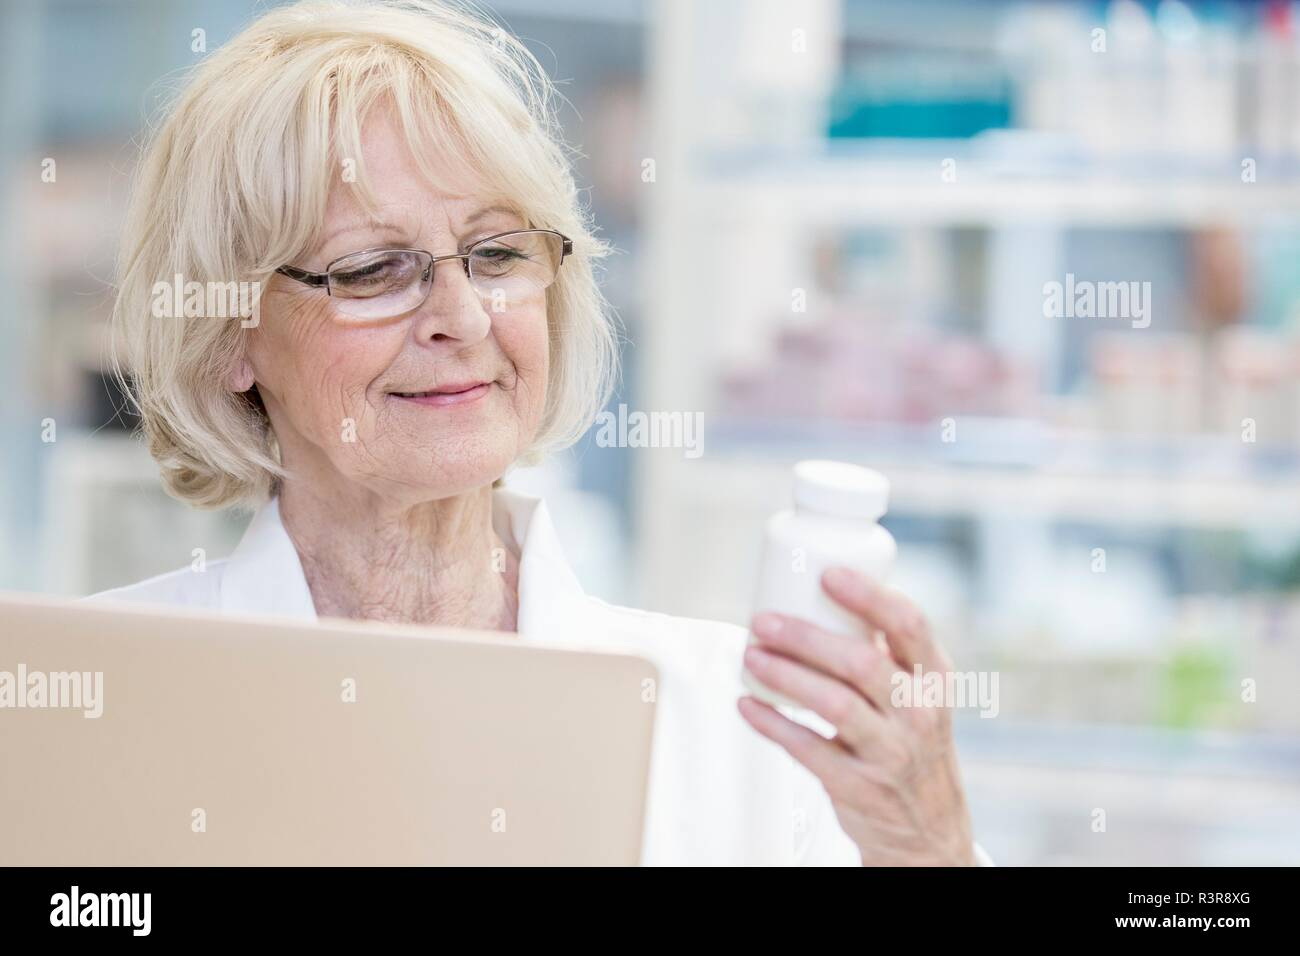 Senior female pharmacist holding laptop and reading label on pill bottle in pharmacy. - Stock Image